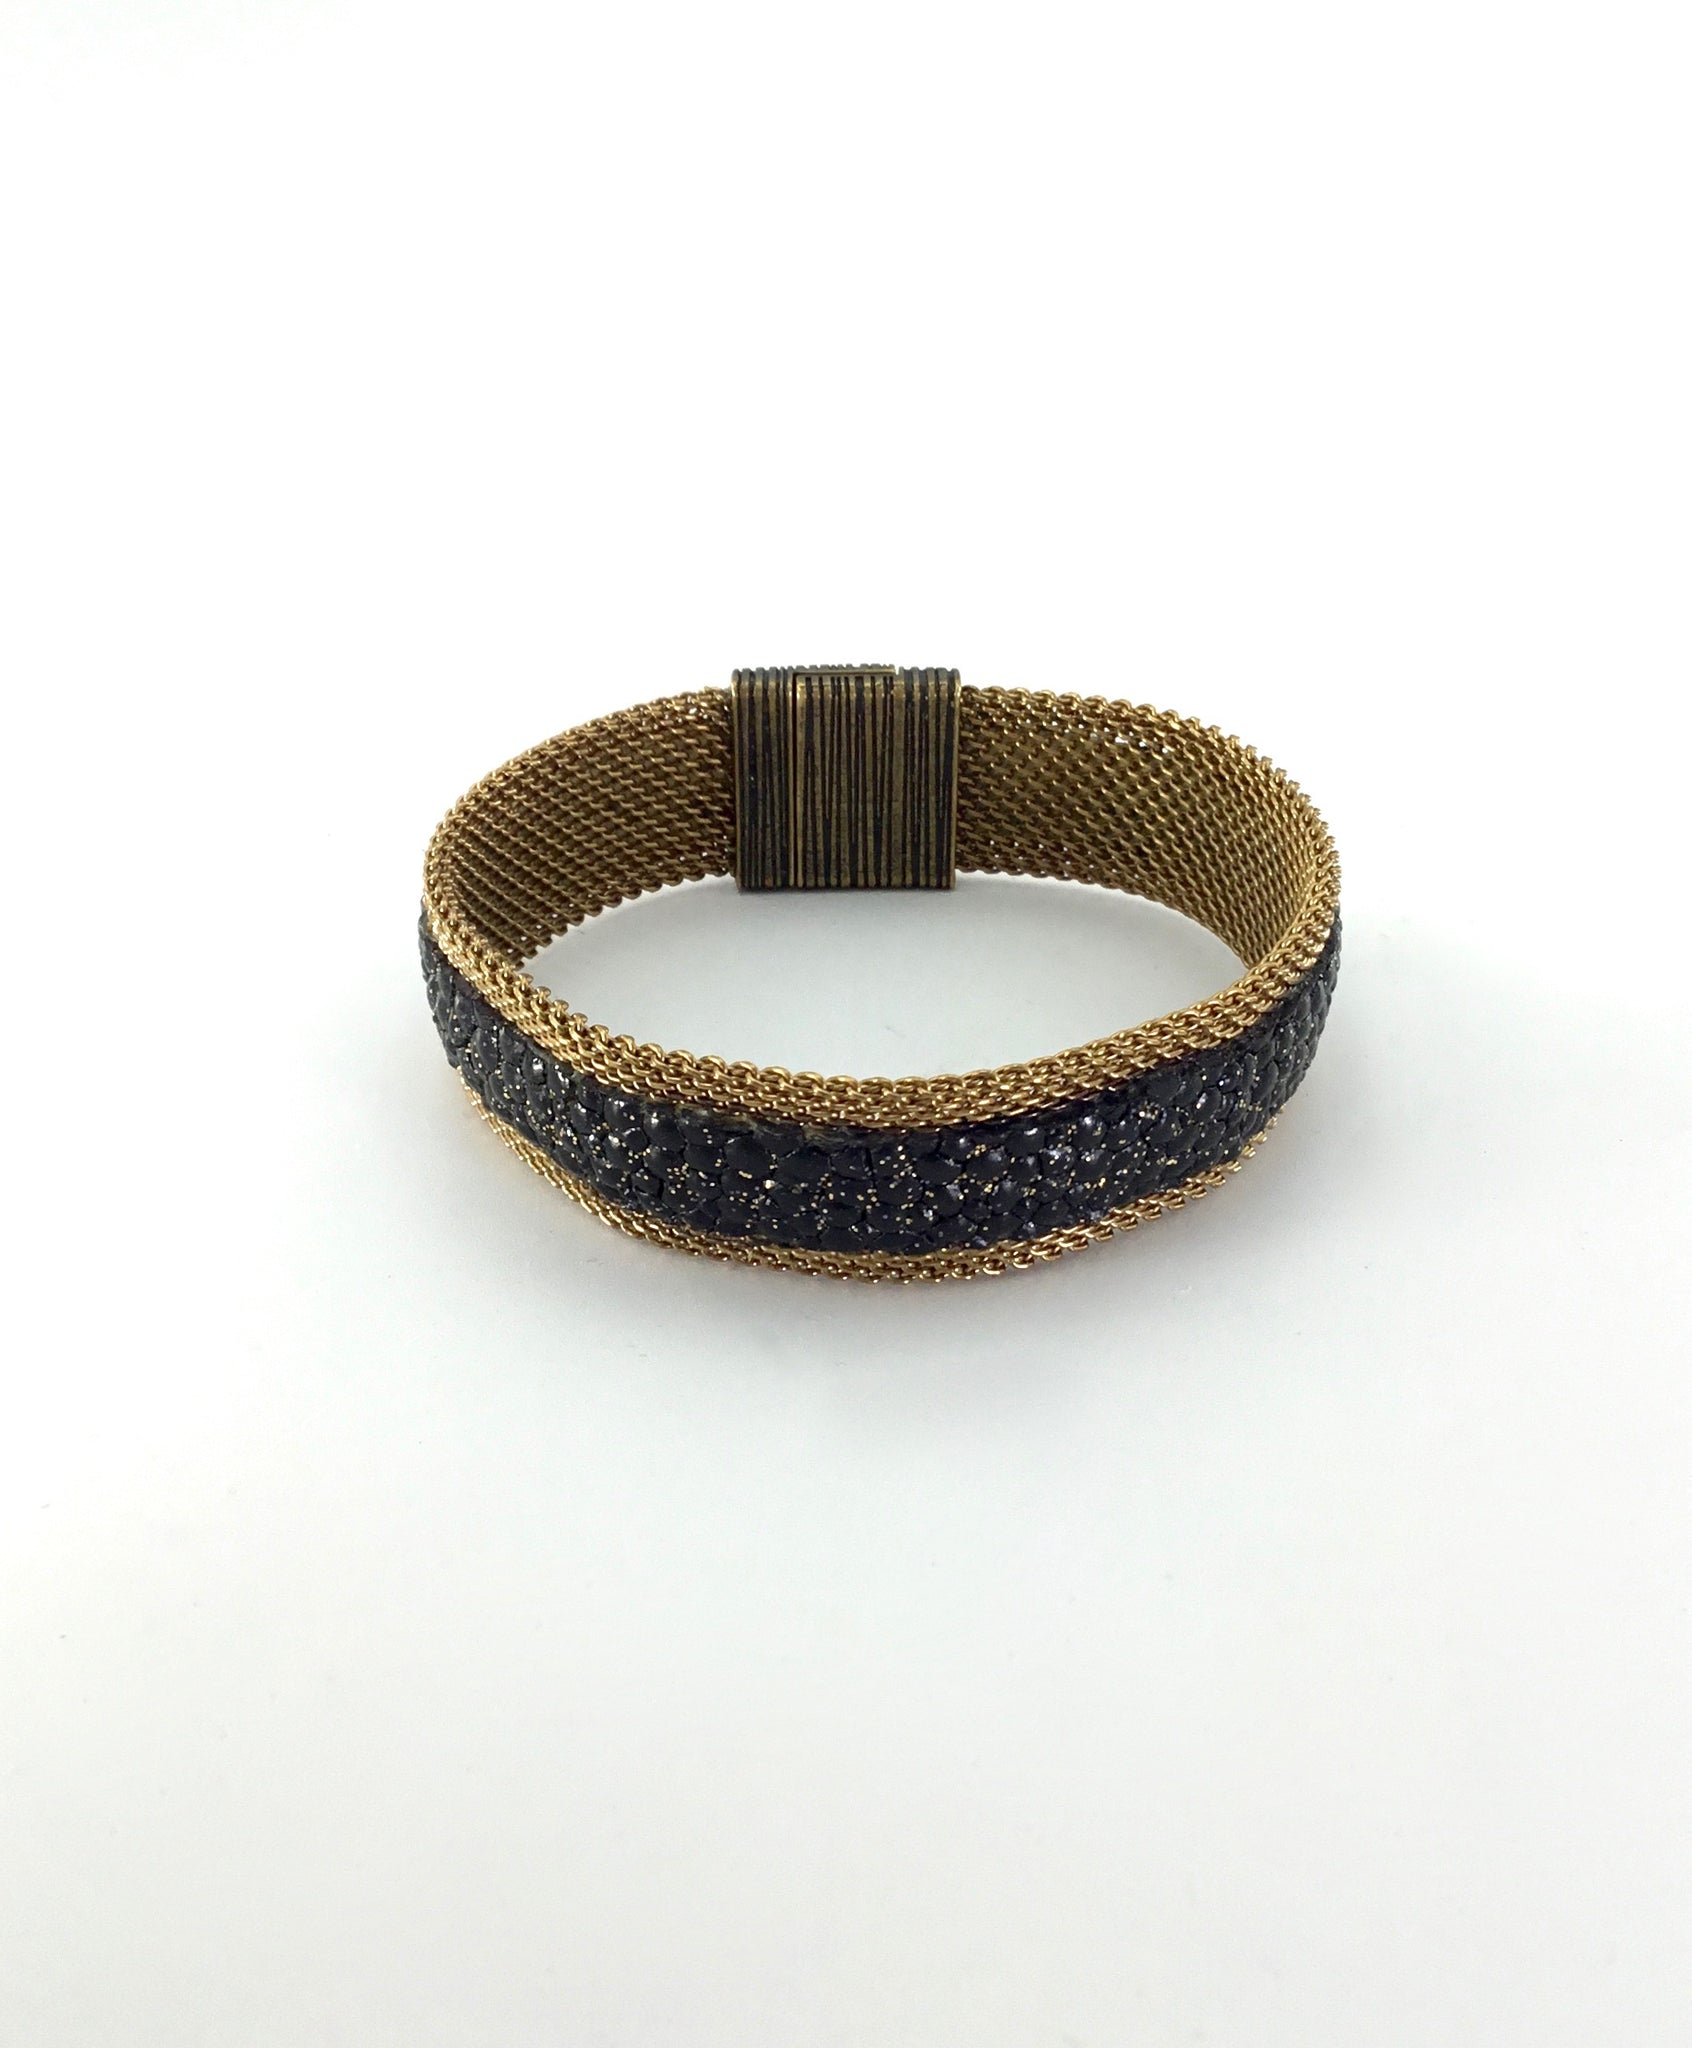 Cynthia Desser Narrow Shimmer Bracelet in Black